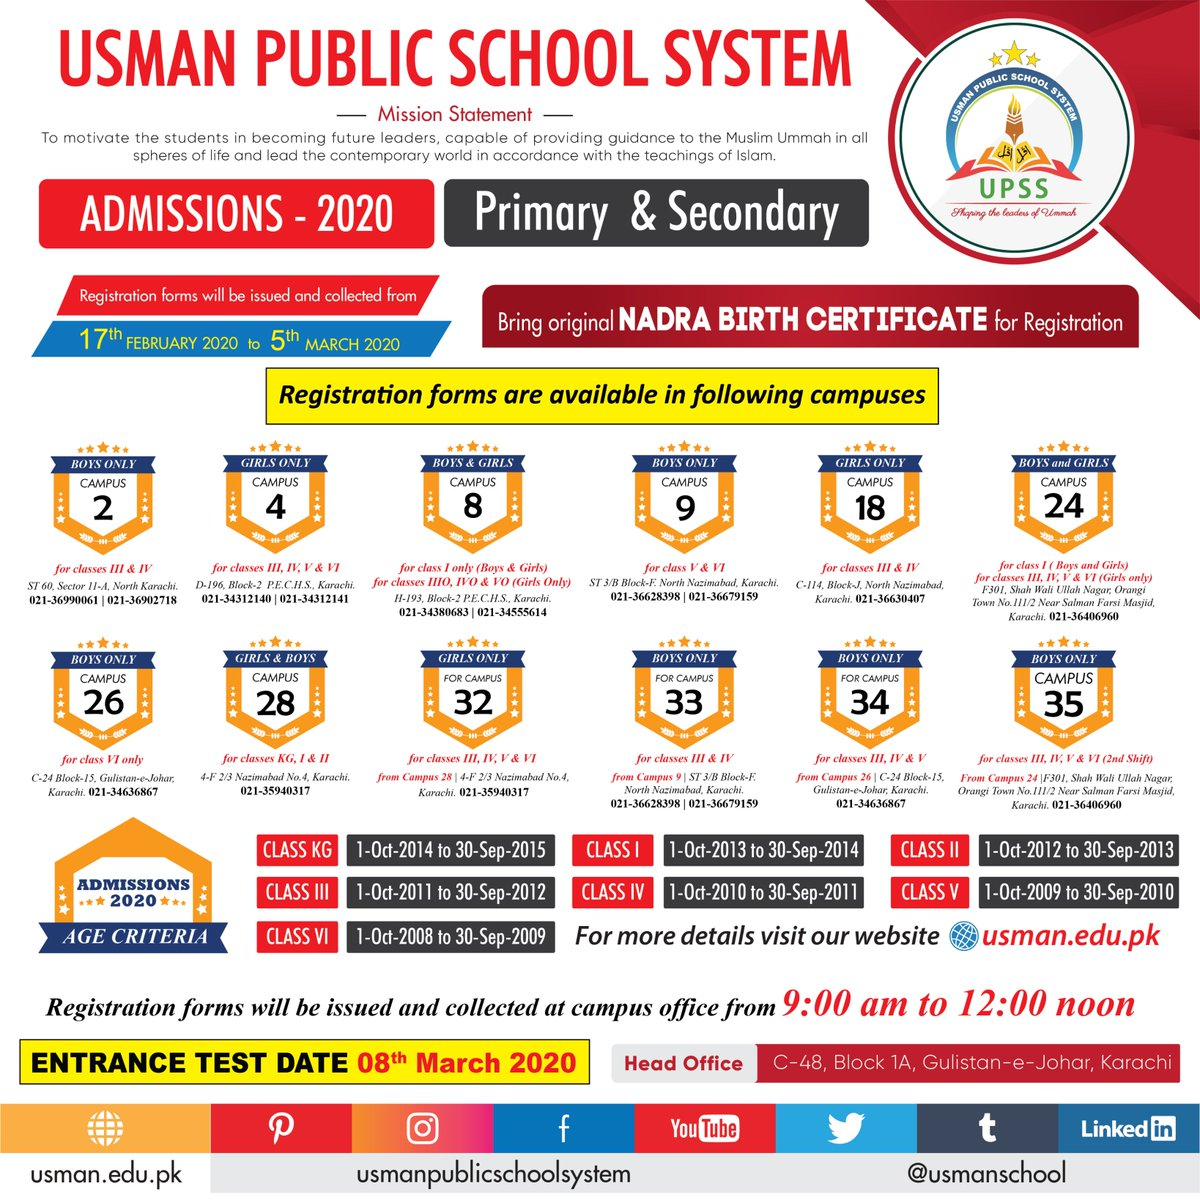 Registrations open for Admissions 202021 #open #usmanpublicschool #boys #2ndround #upss #karachicampuses #admissions #education #students #admission #school #admissionopen #admissionsopen #karachi #pakistan #islamicschool #studentscouncilpic.twitter.com/63DvDmd3oW